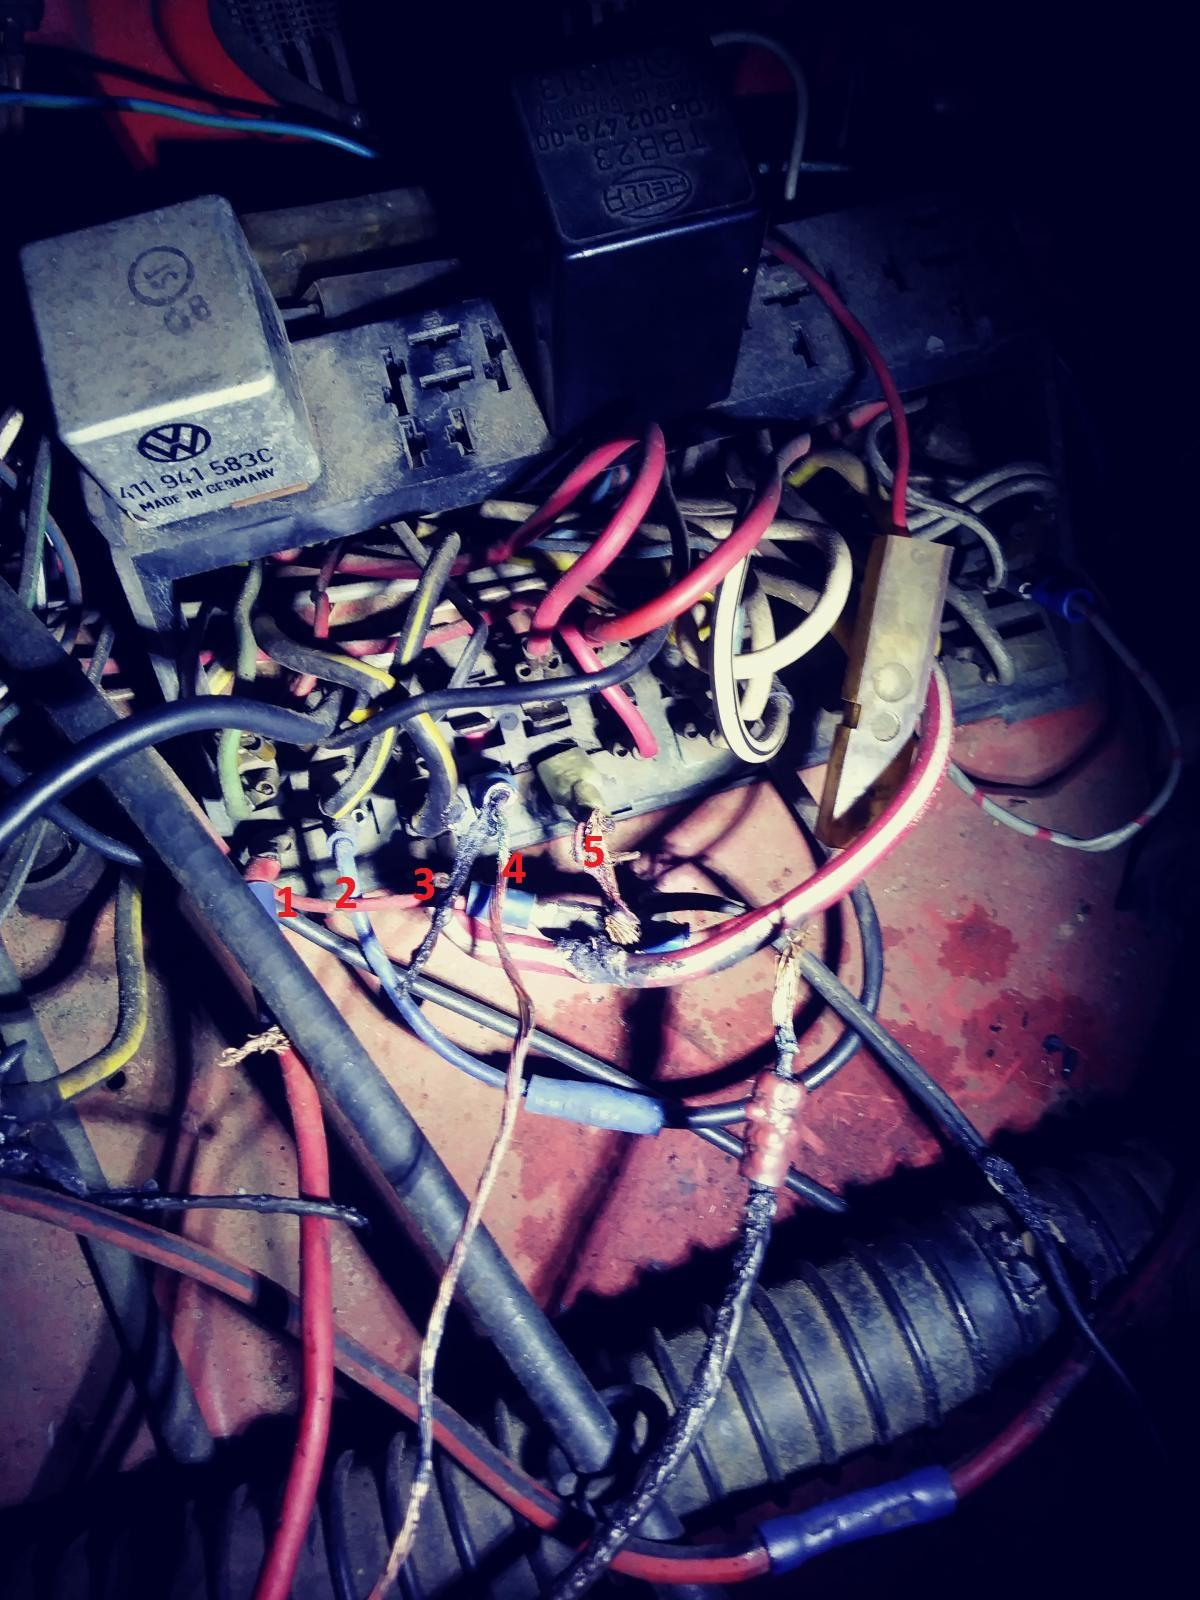 72 fuse box issues